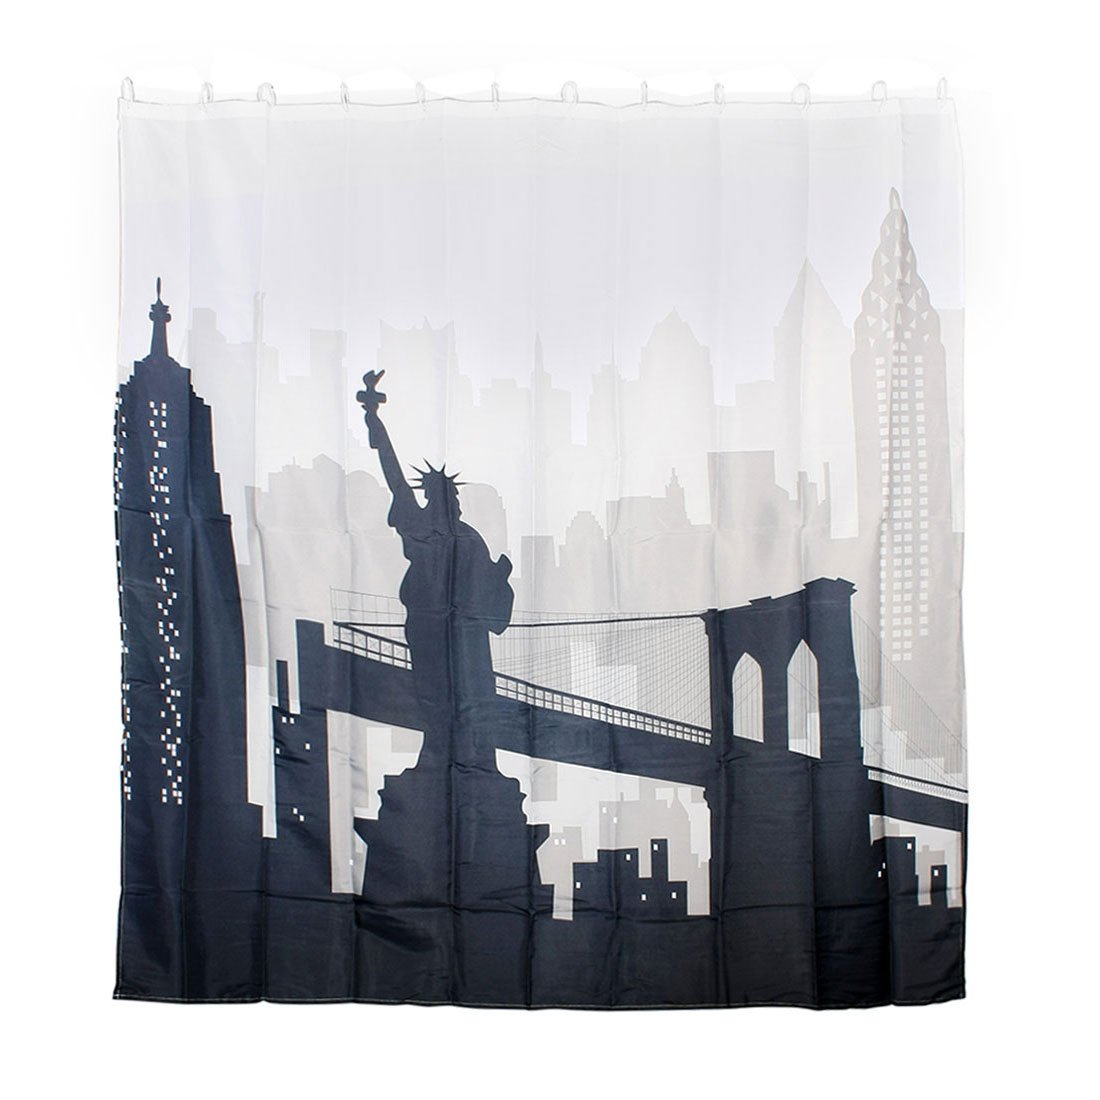 uxcell City Silhouette Print Home Hotel Shower Bath Curtain w 12 Hook Rings